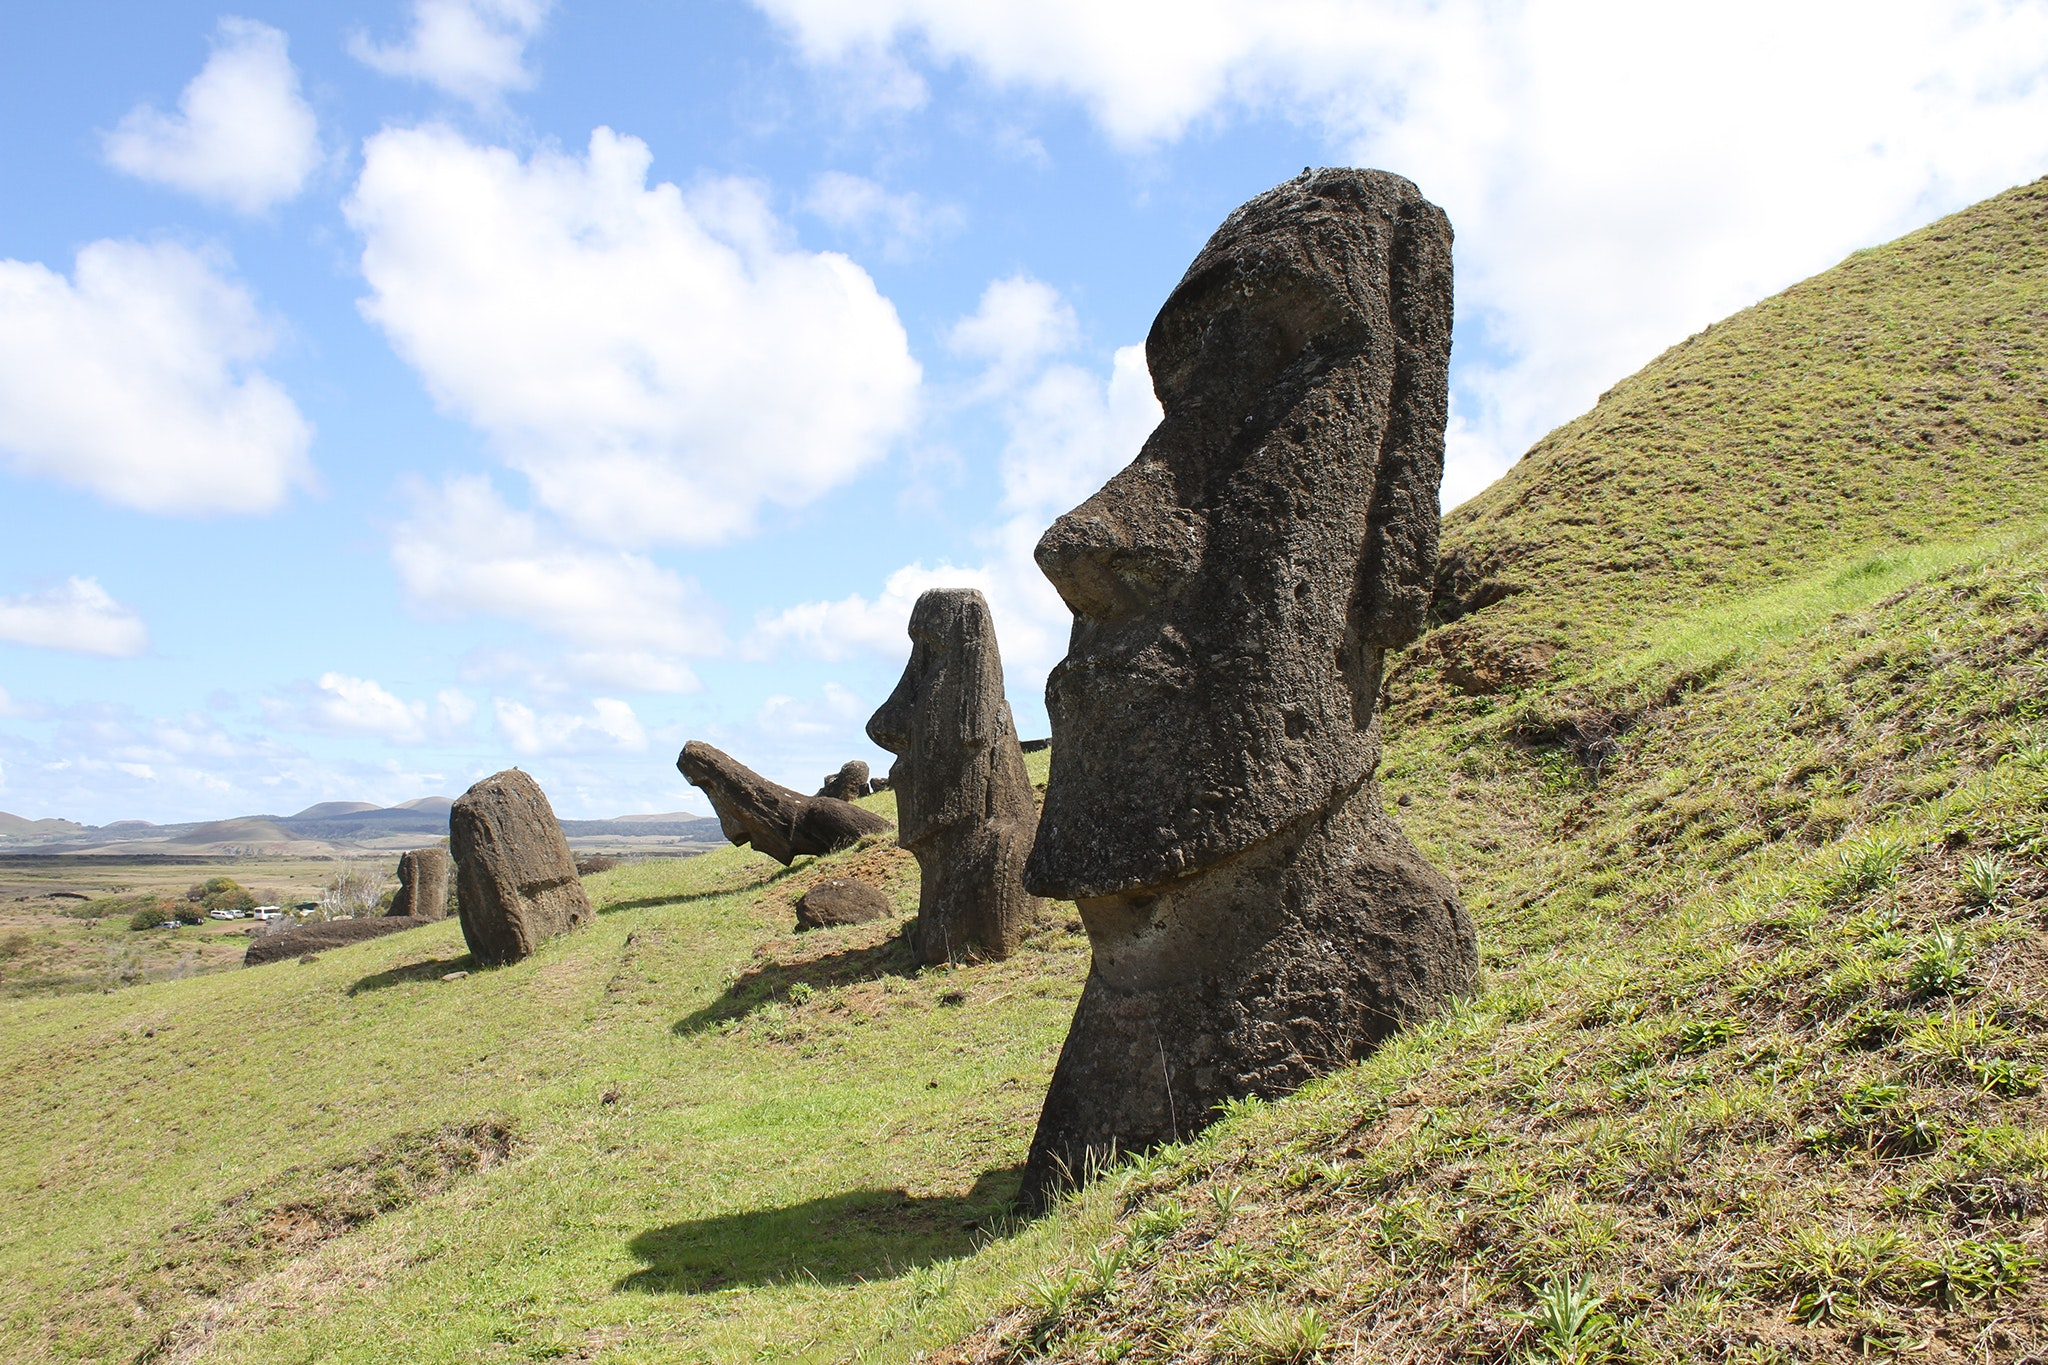 Dutch explorers gave Easter Island its name in 1722 after spotting the landmass on Easter Sunday. The island's indigenous name is Rapa Nui.